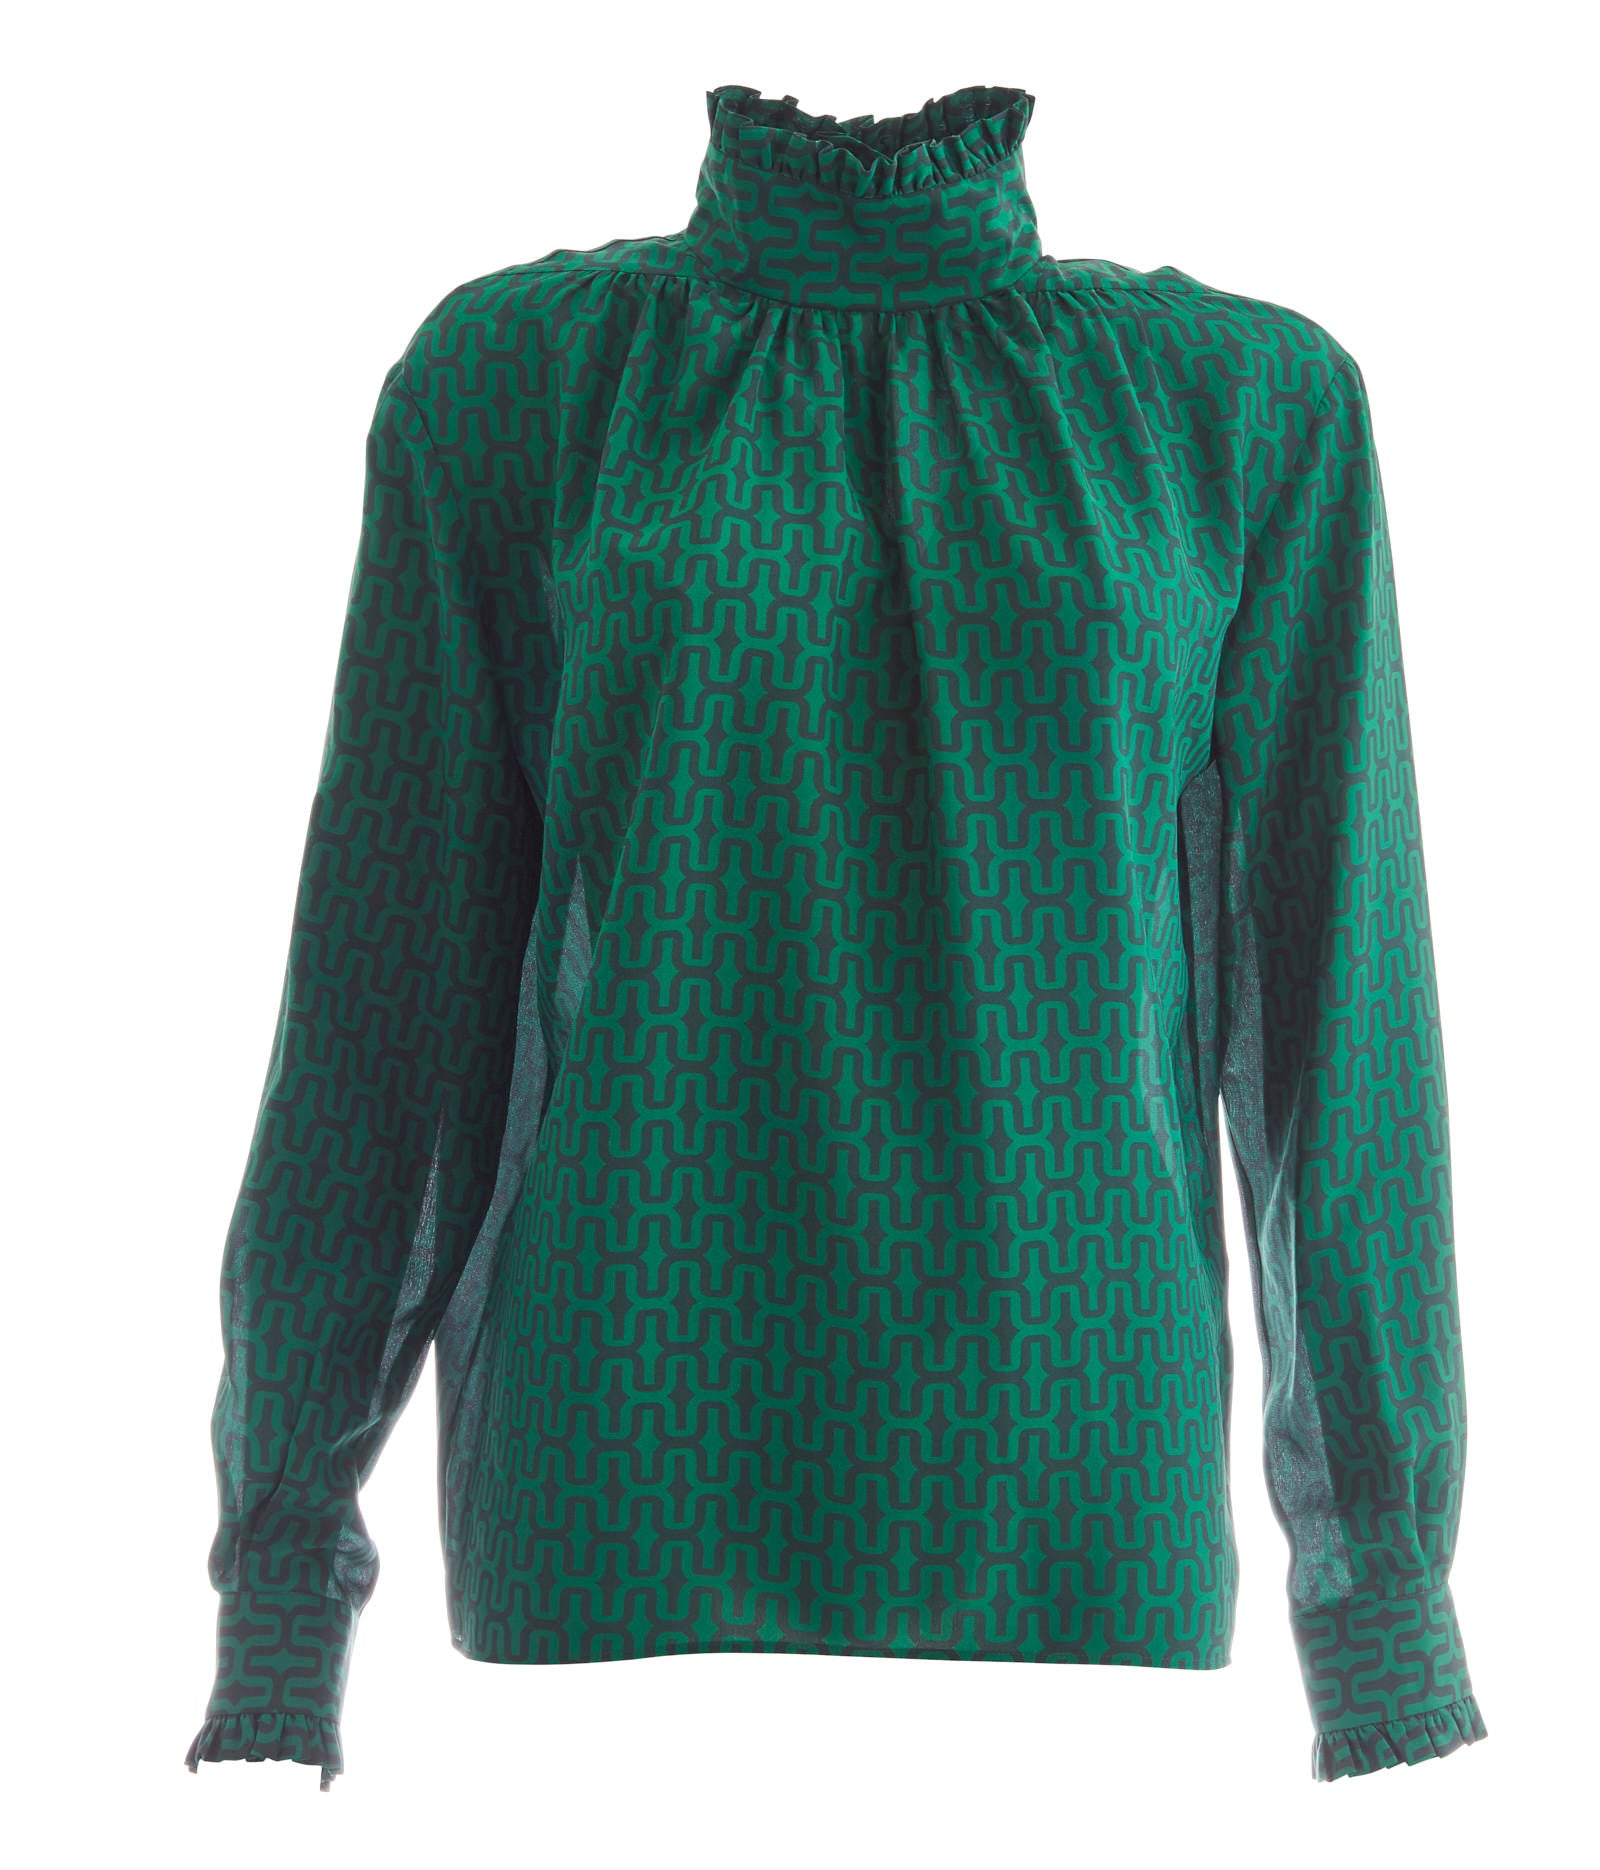 Green Geometric Silk Blouse- Ruffled High Collar